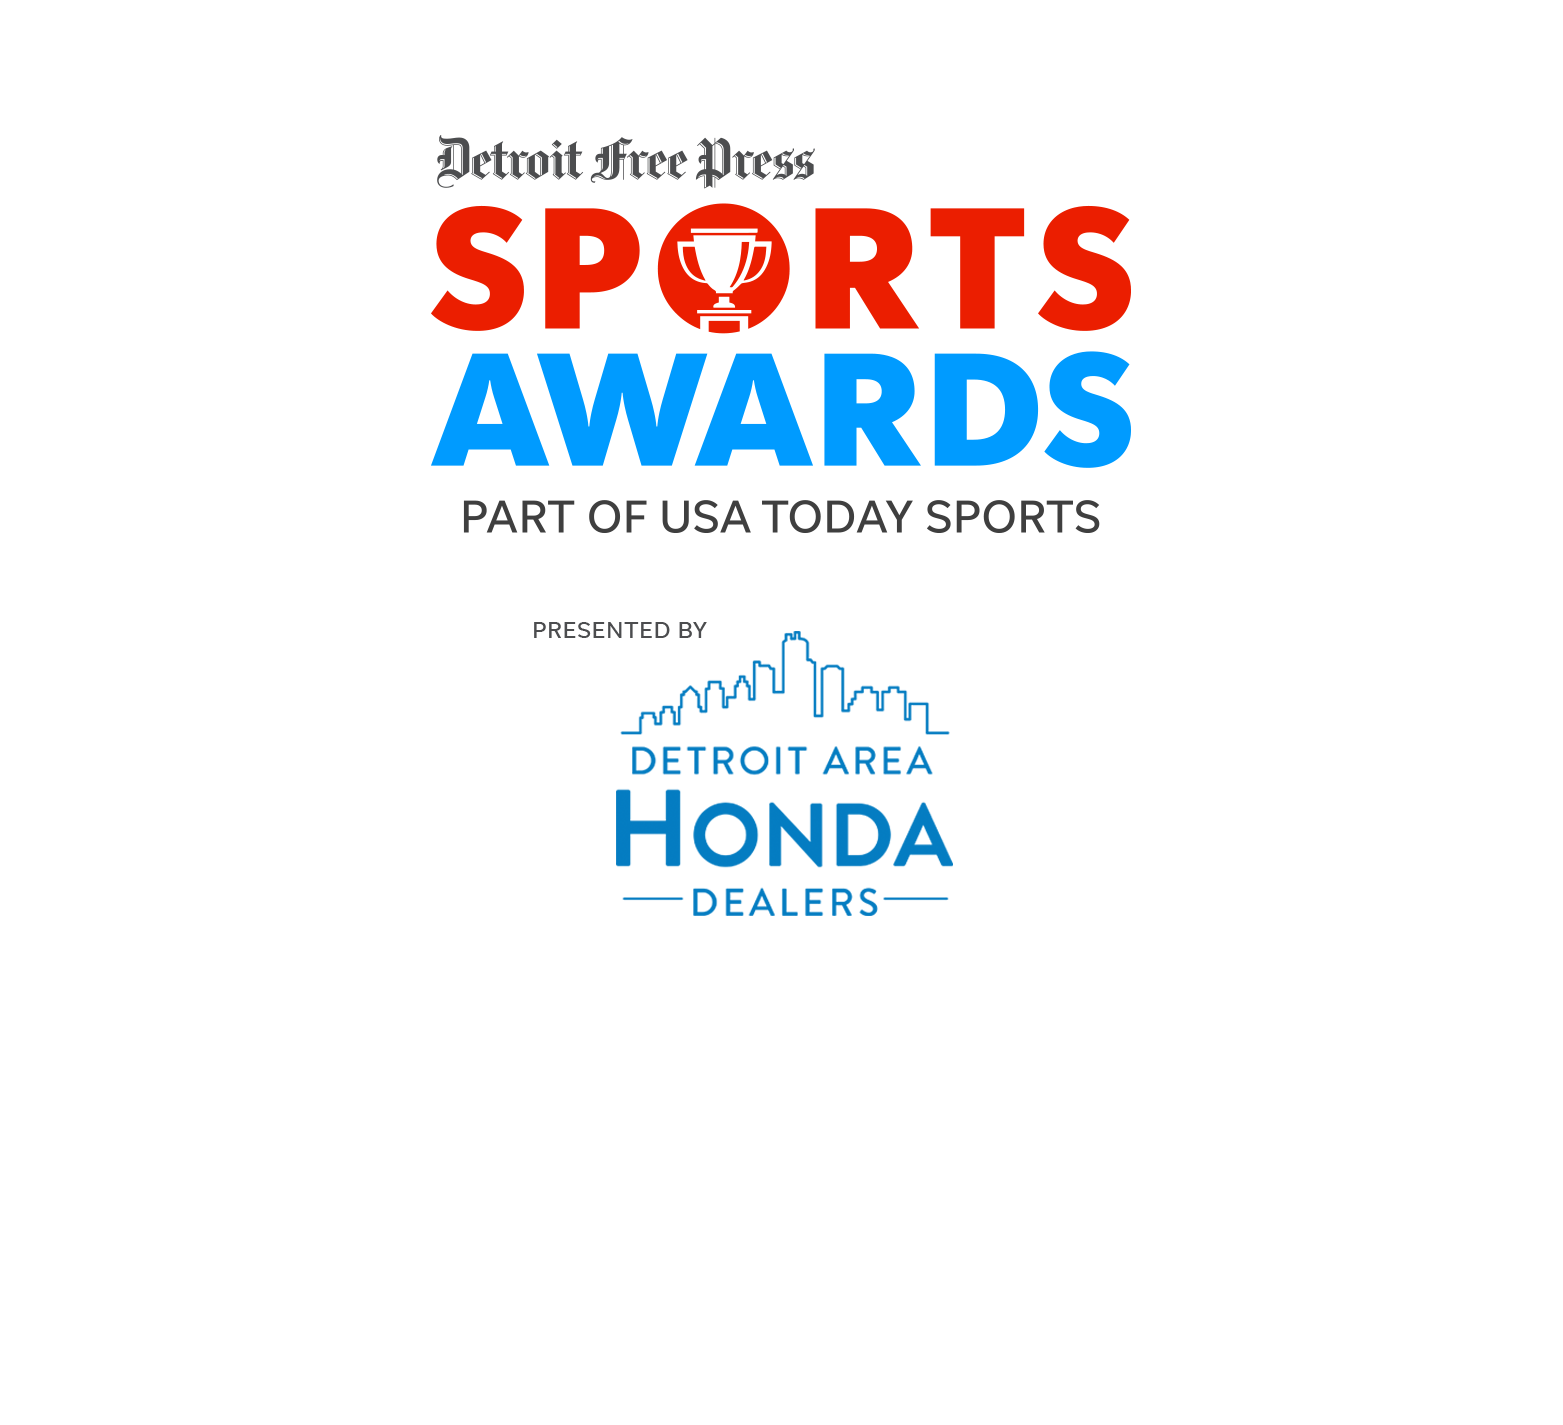 2020 Detroit Free Press Sports Awards Tickets Available